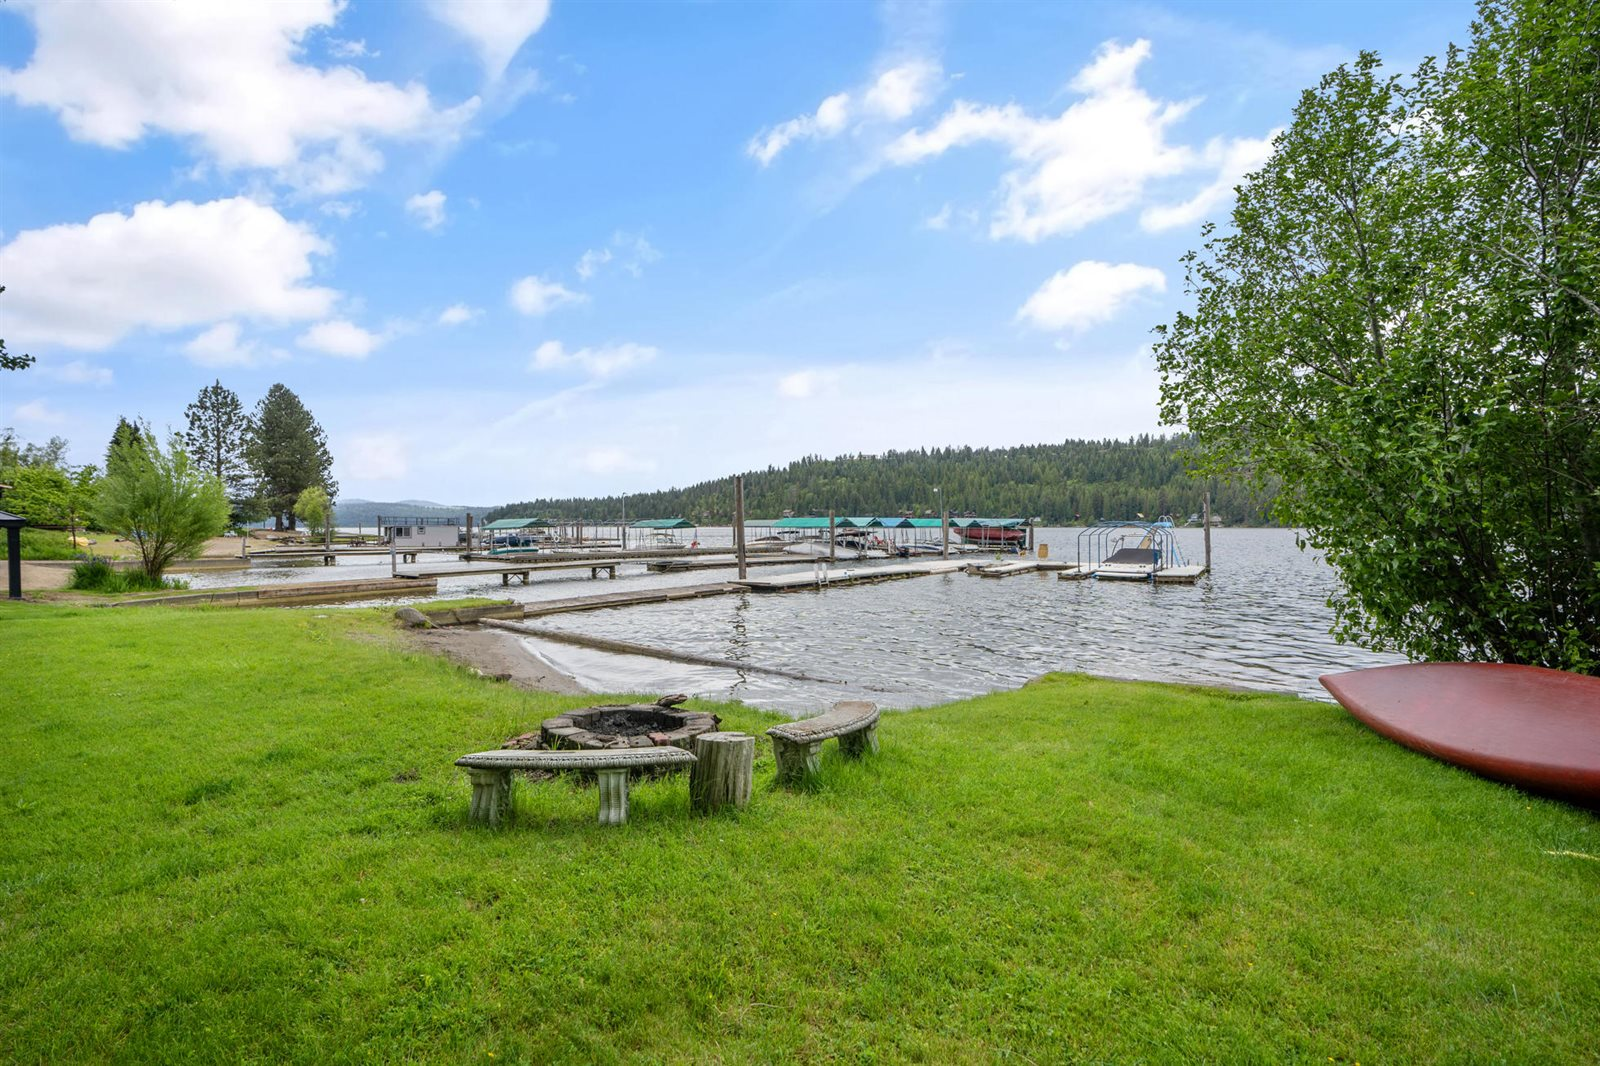 6916 West Boutwell Dr, Coeur d'Alene, ID 83814